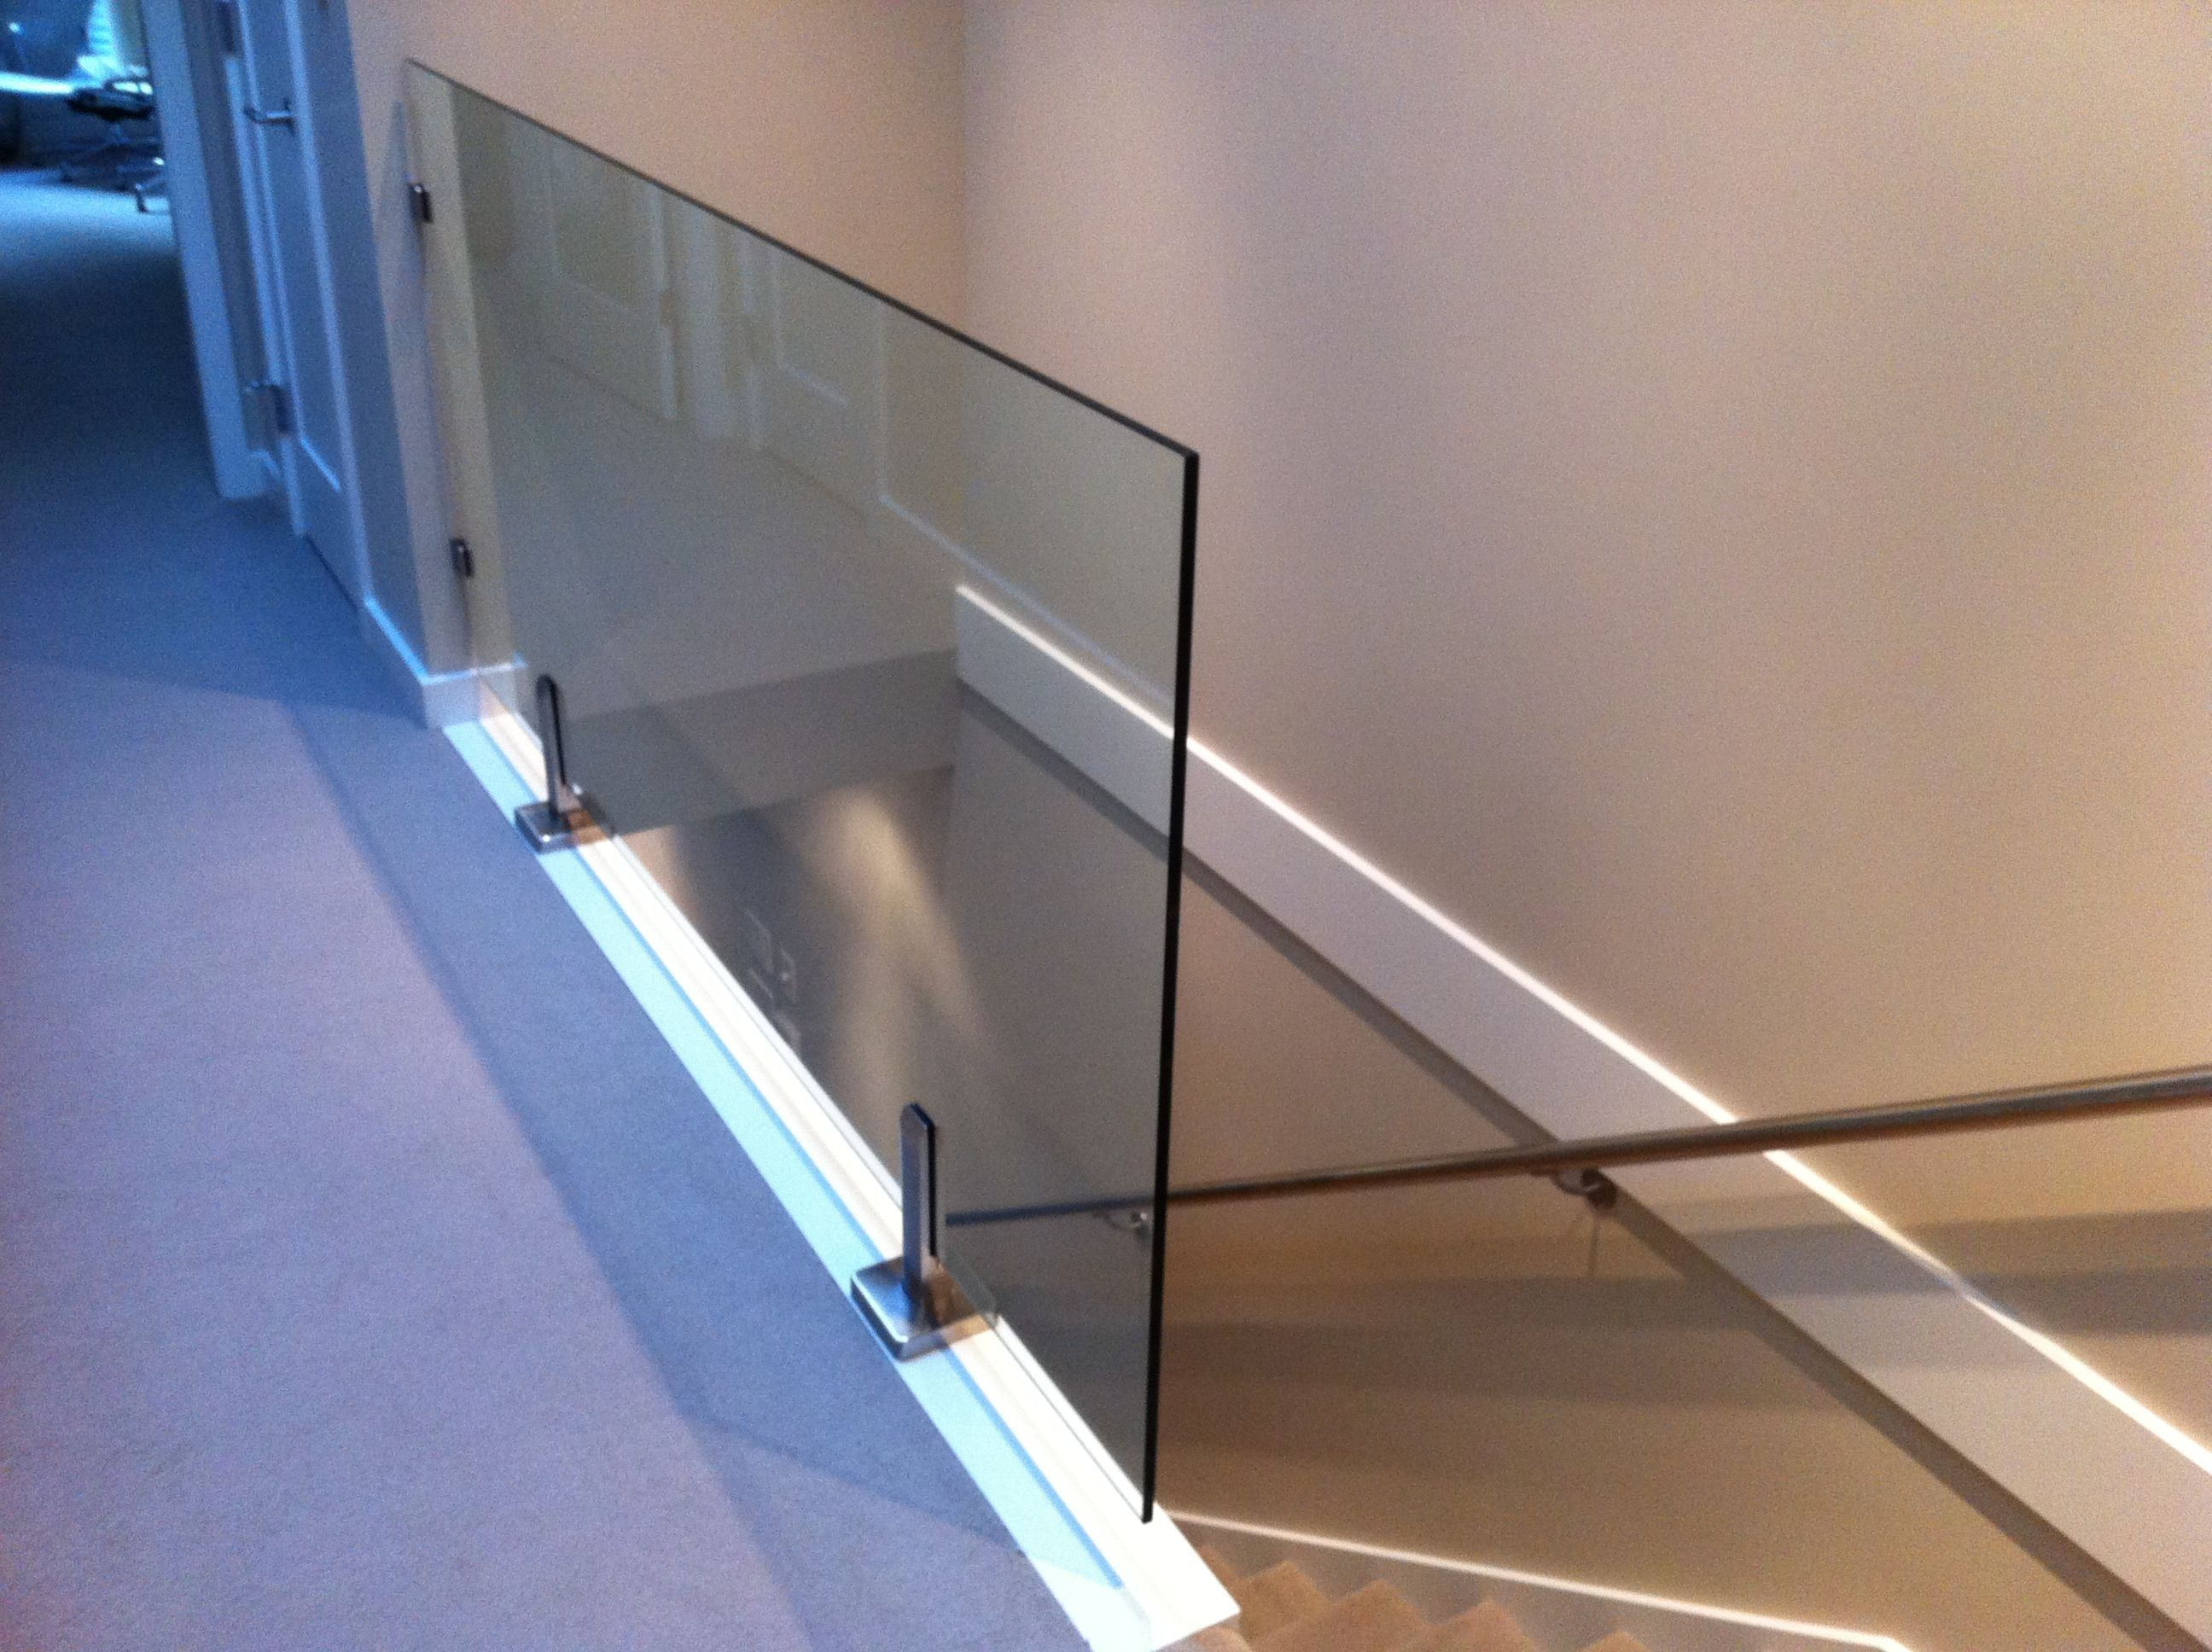 Glass Railings Super Interior Railing With All Clamps ...